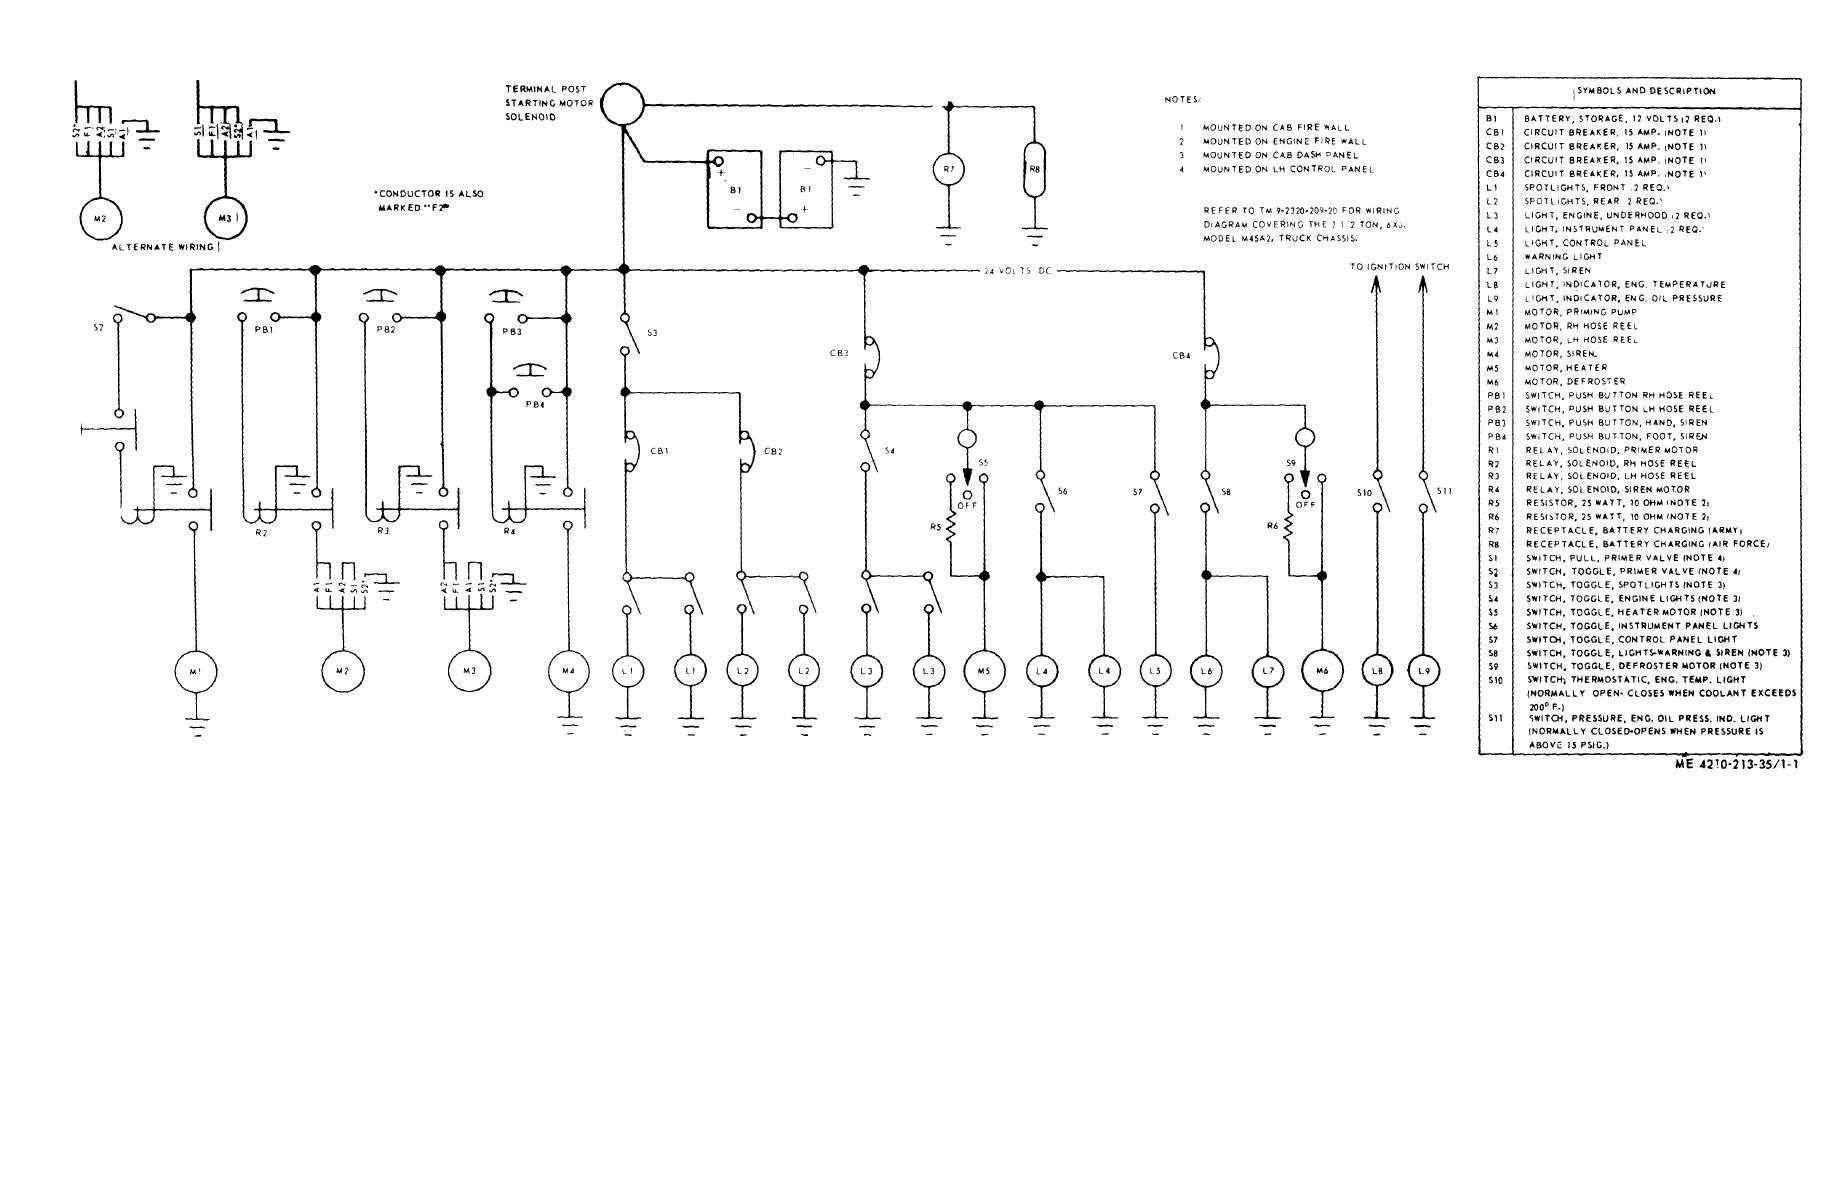 Figure 1-1. Wiring diagram